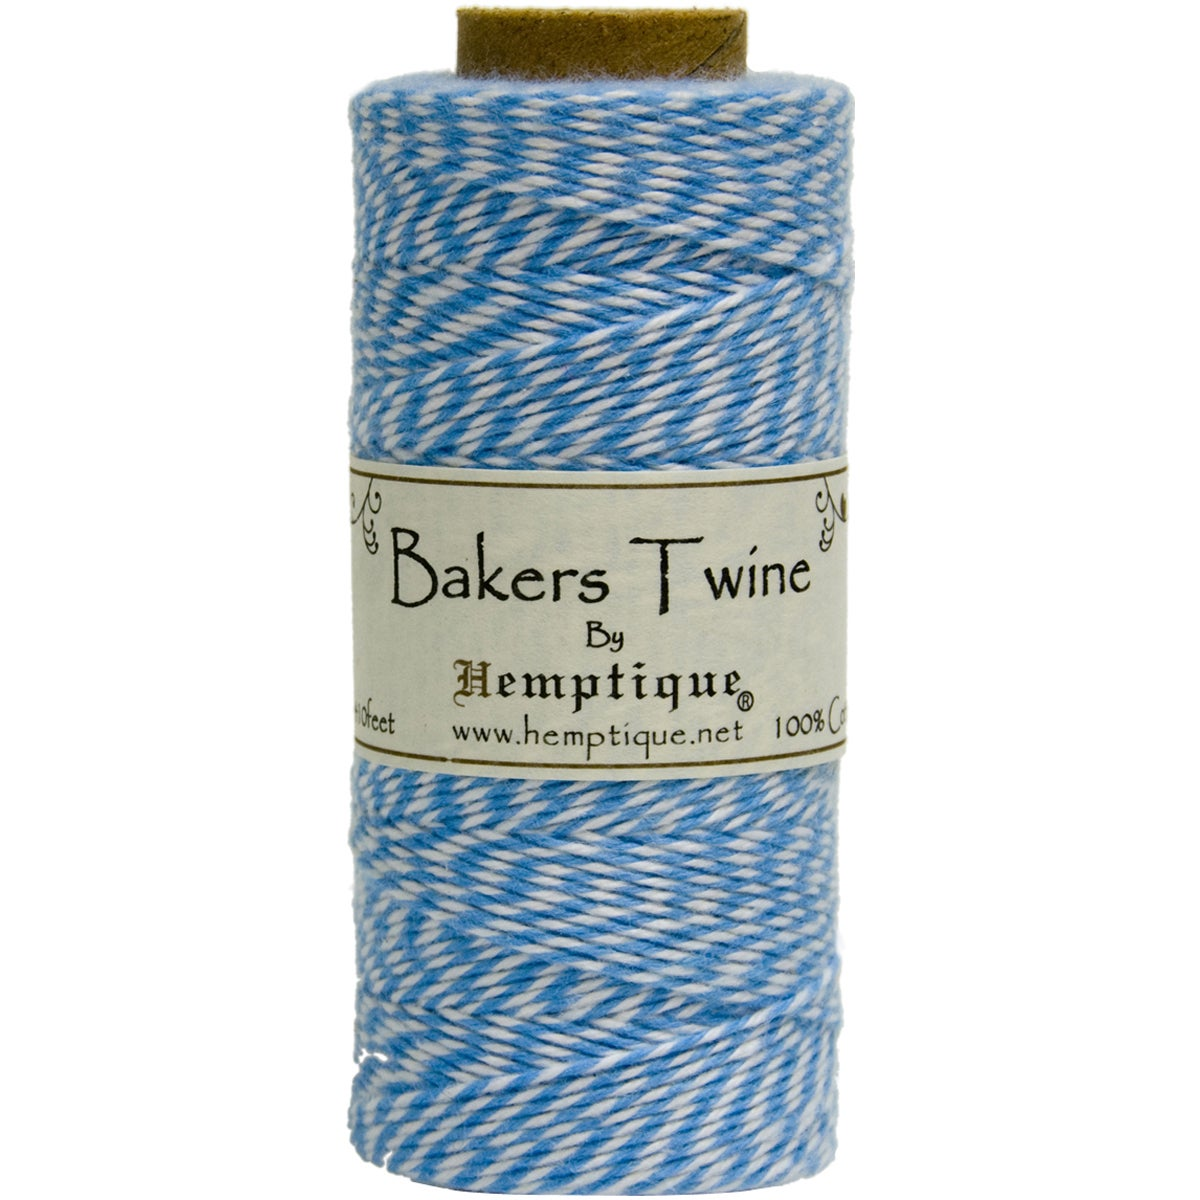 Cotton Baker's Twine Spool 2-Ply 410' (Blue)